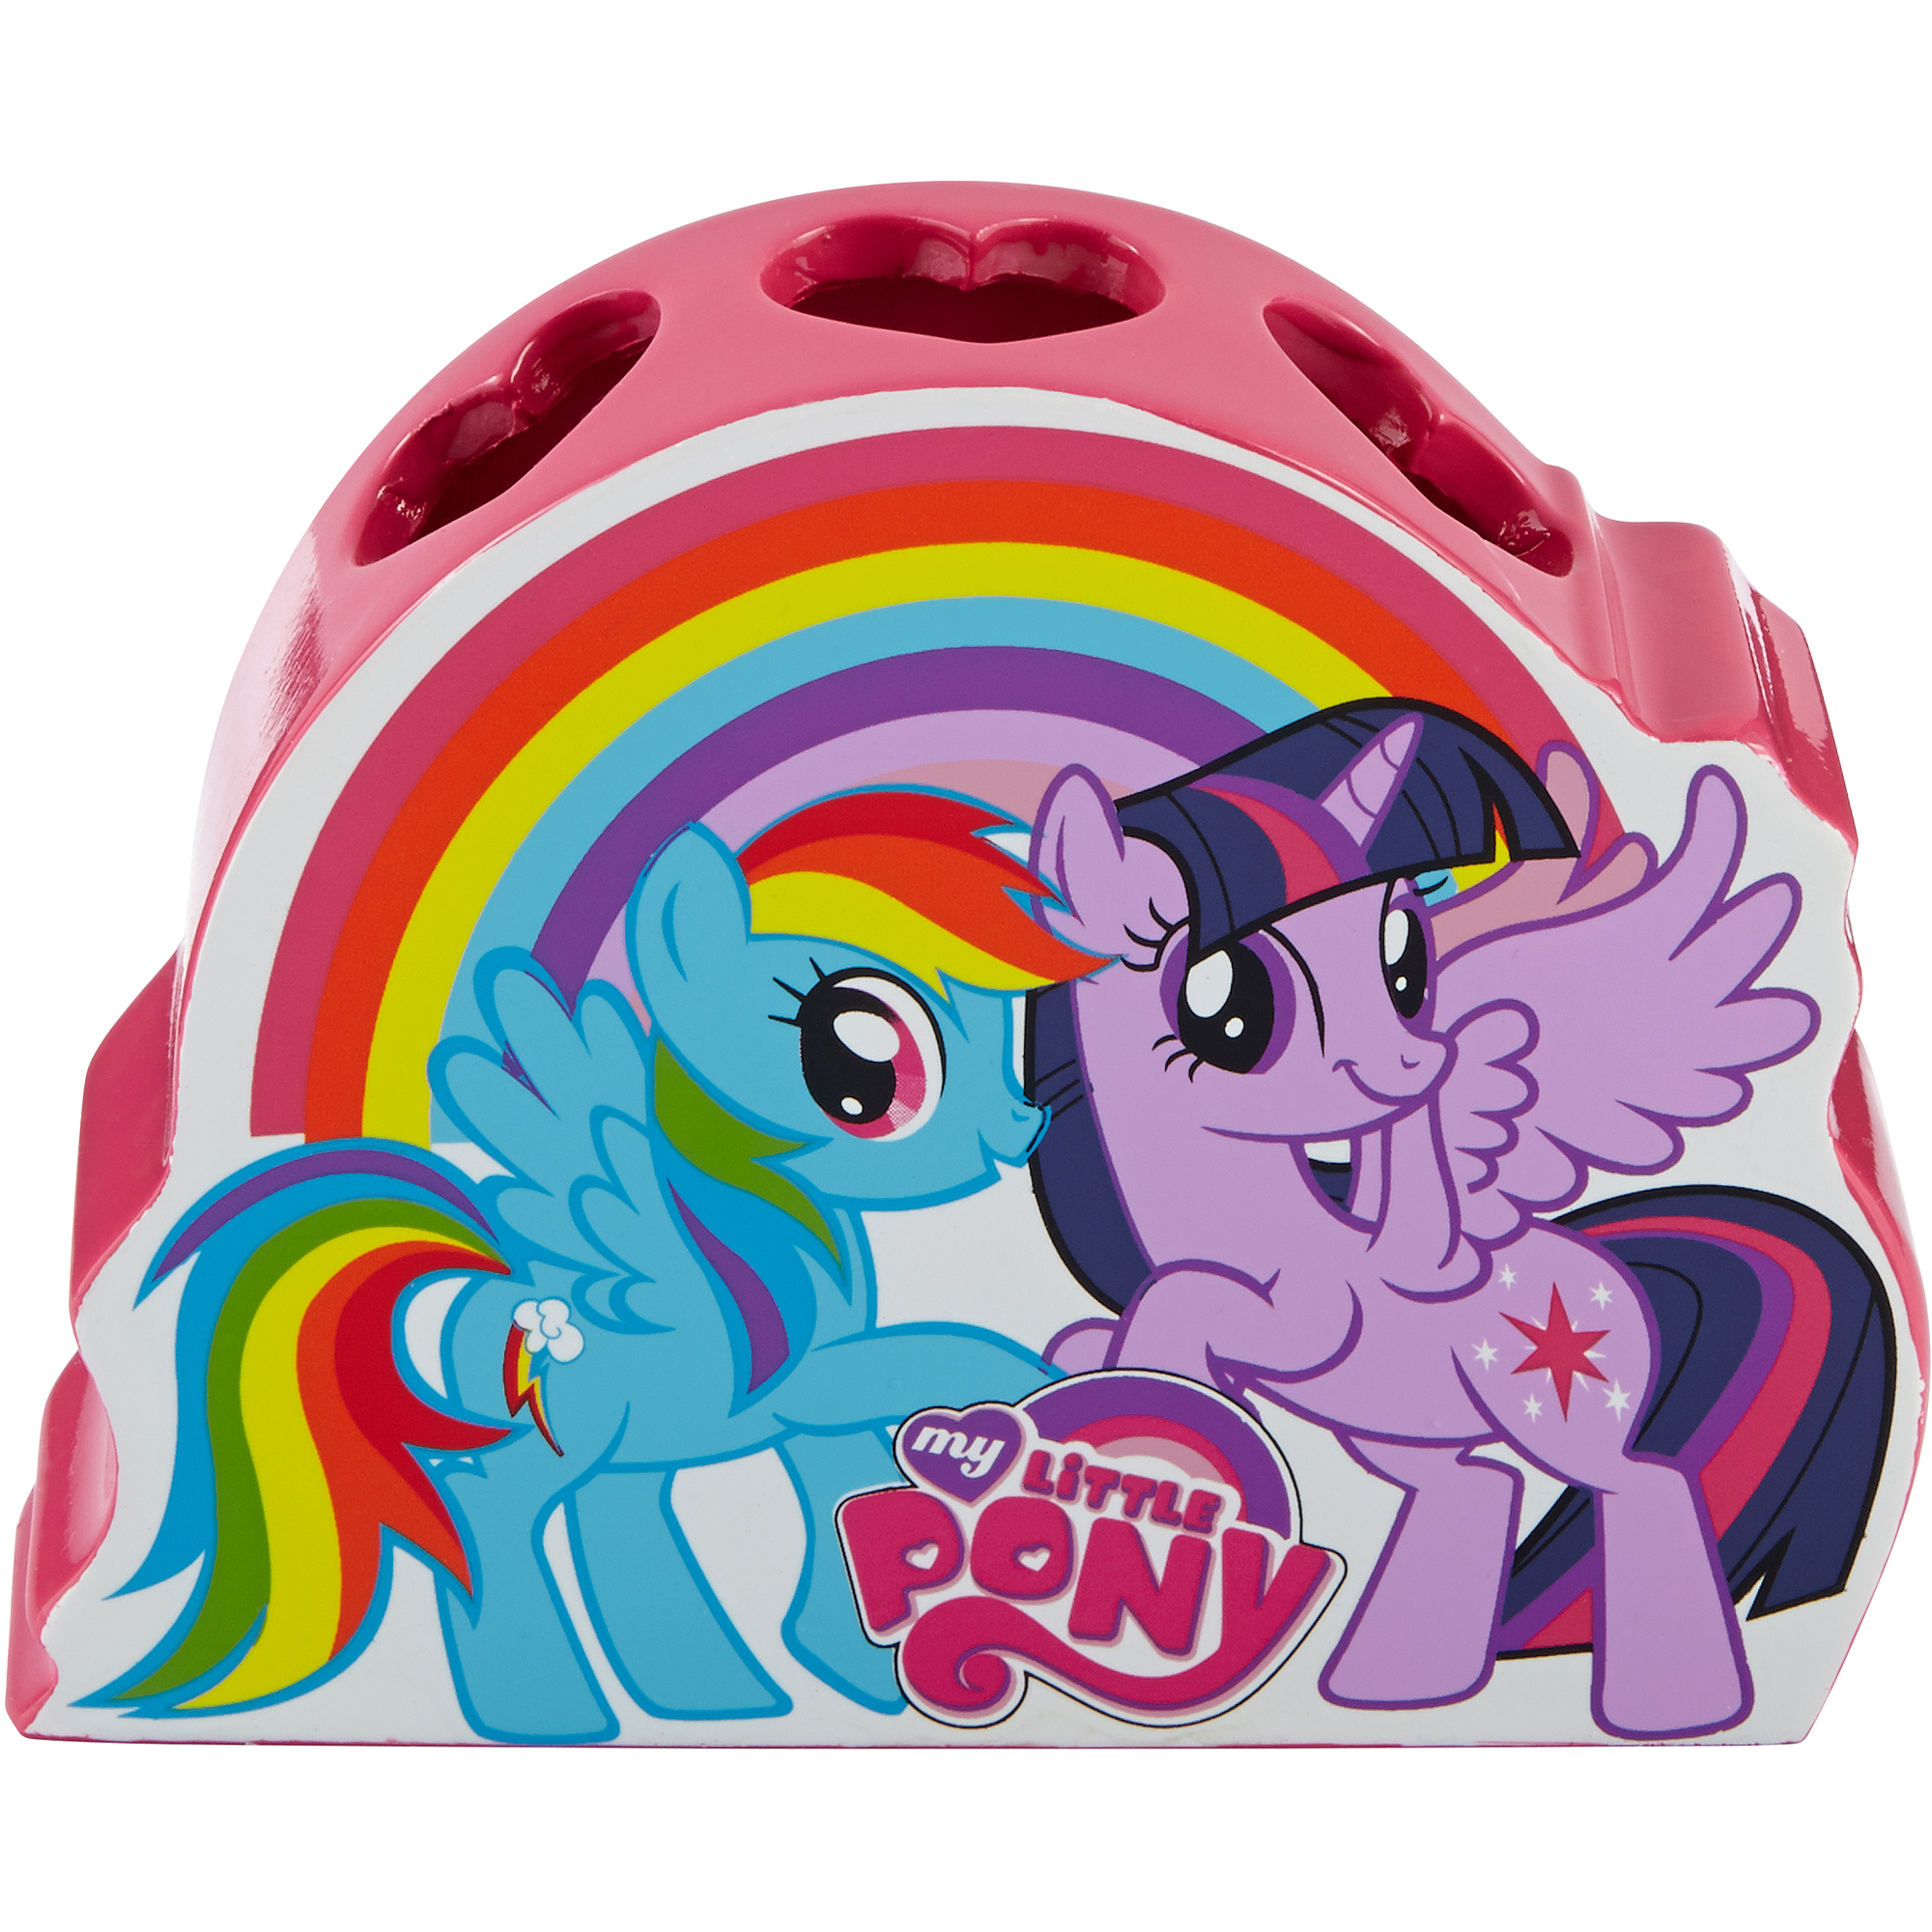 Exceptionnel My Little Pony Toothbrush Holder   Walmart.com